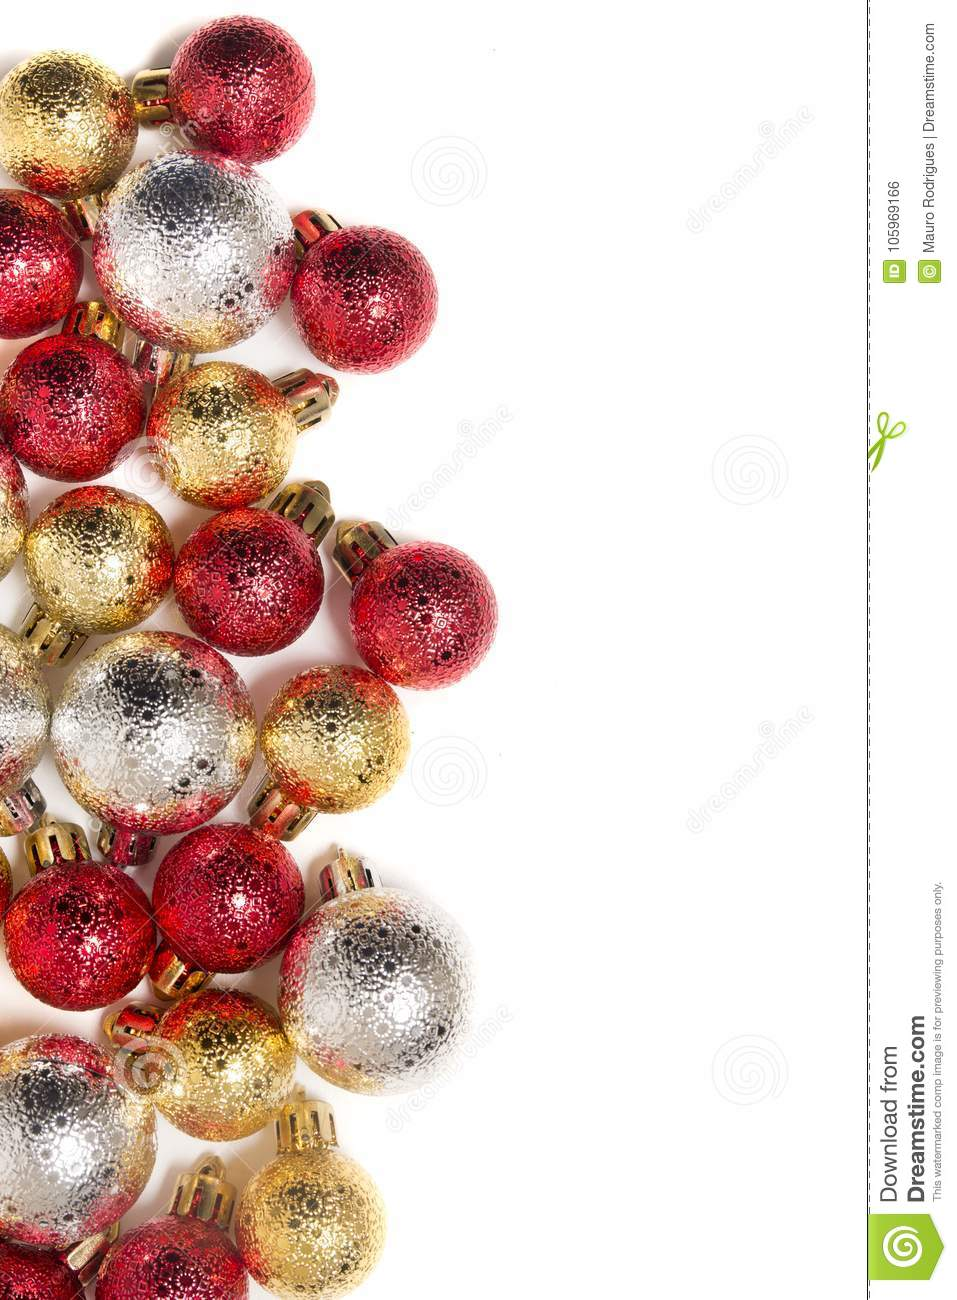 Group Of Colorful Christmas Balls Stock Photo - Image of mixed ...